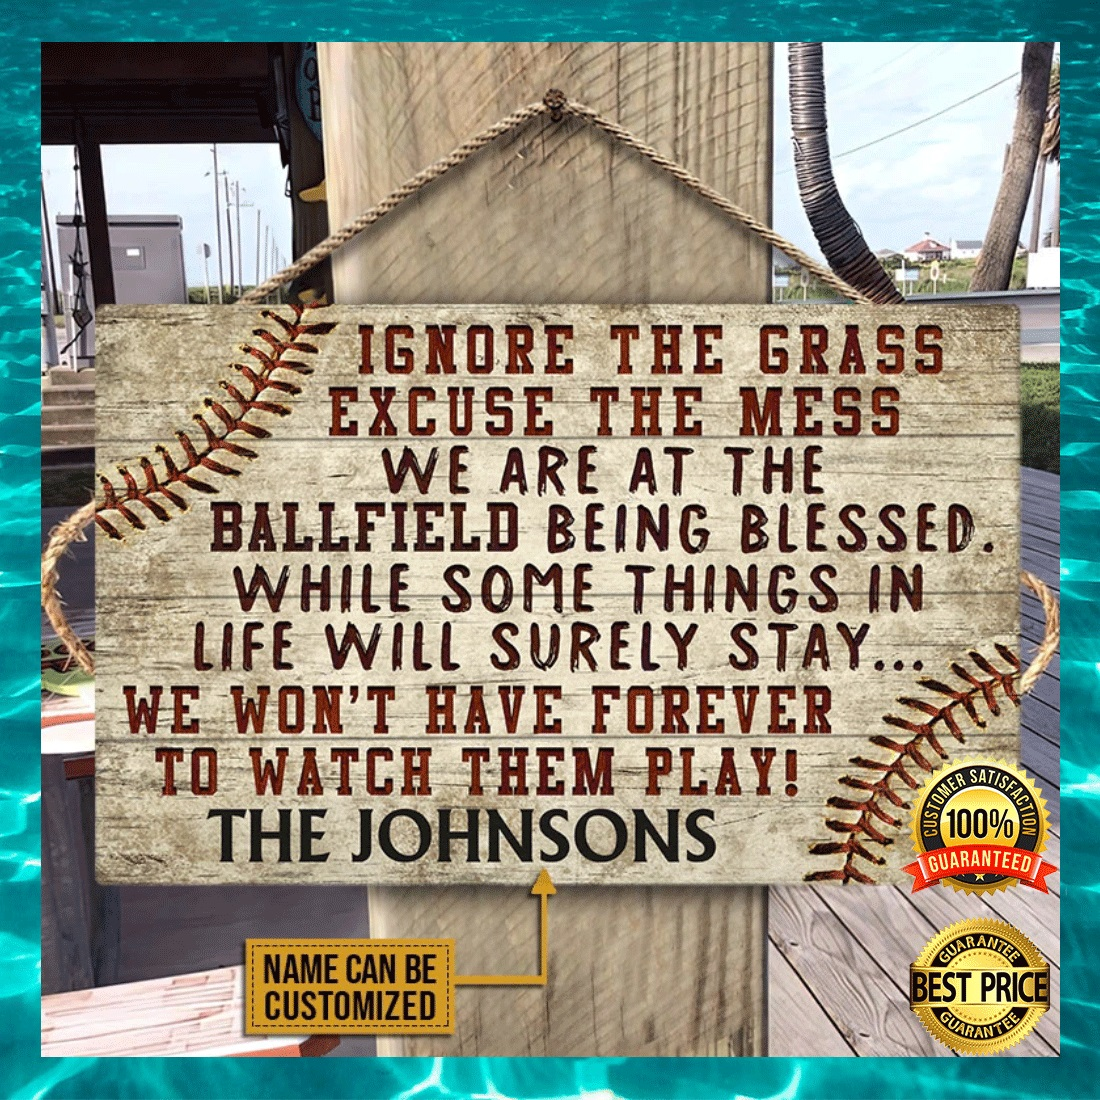 PERSONALIZED IGNORE THE GRASS EXCUSE THE MESS WE ARE AT THE BALLFIELD BEING BLESSED DOOR SIGN 7